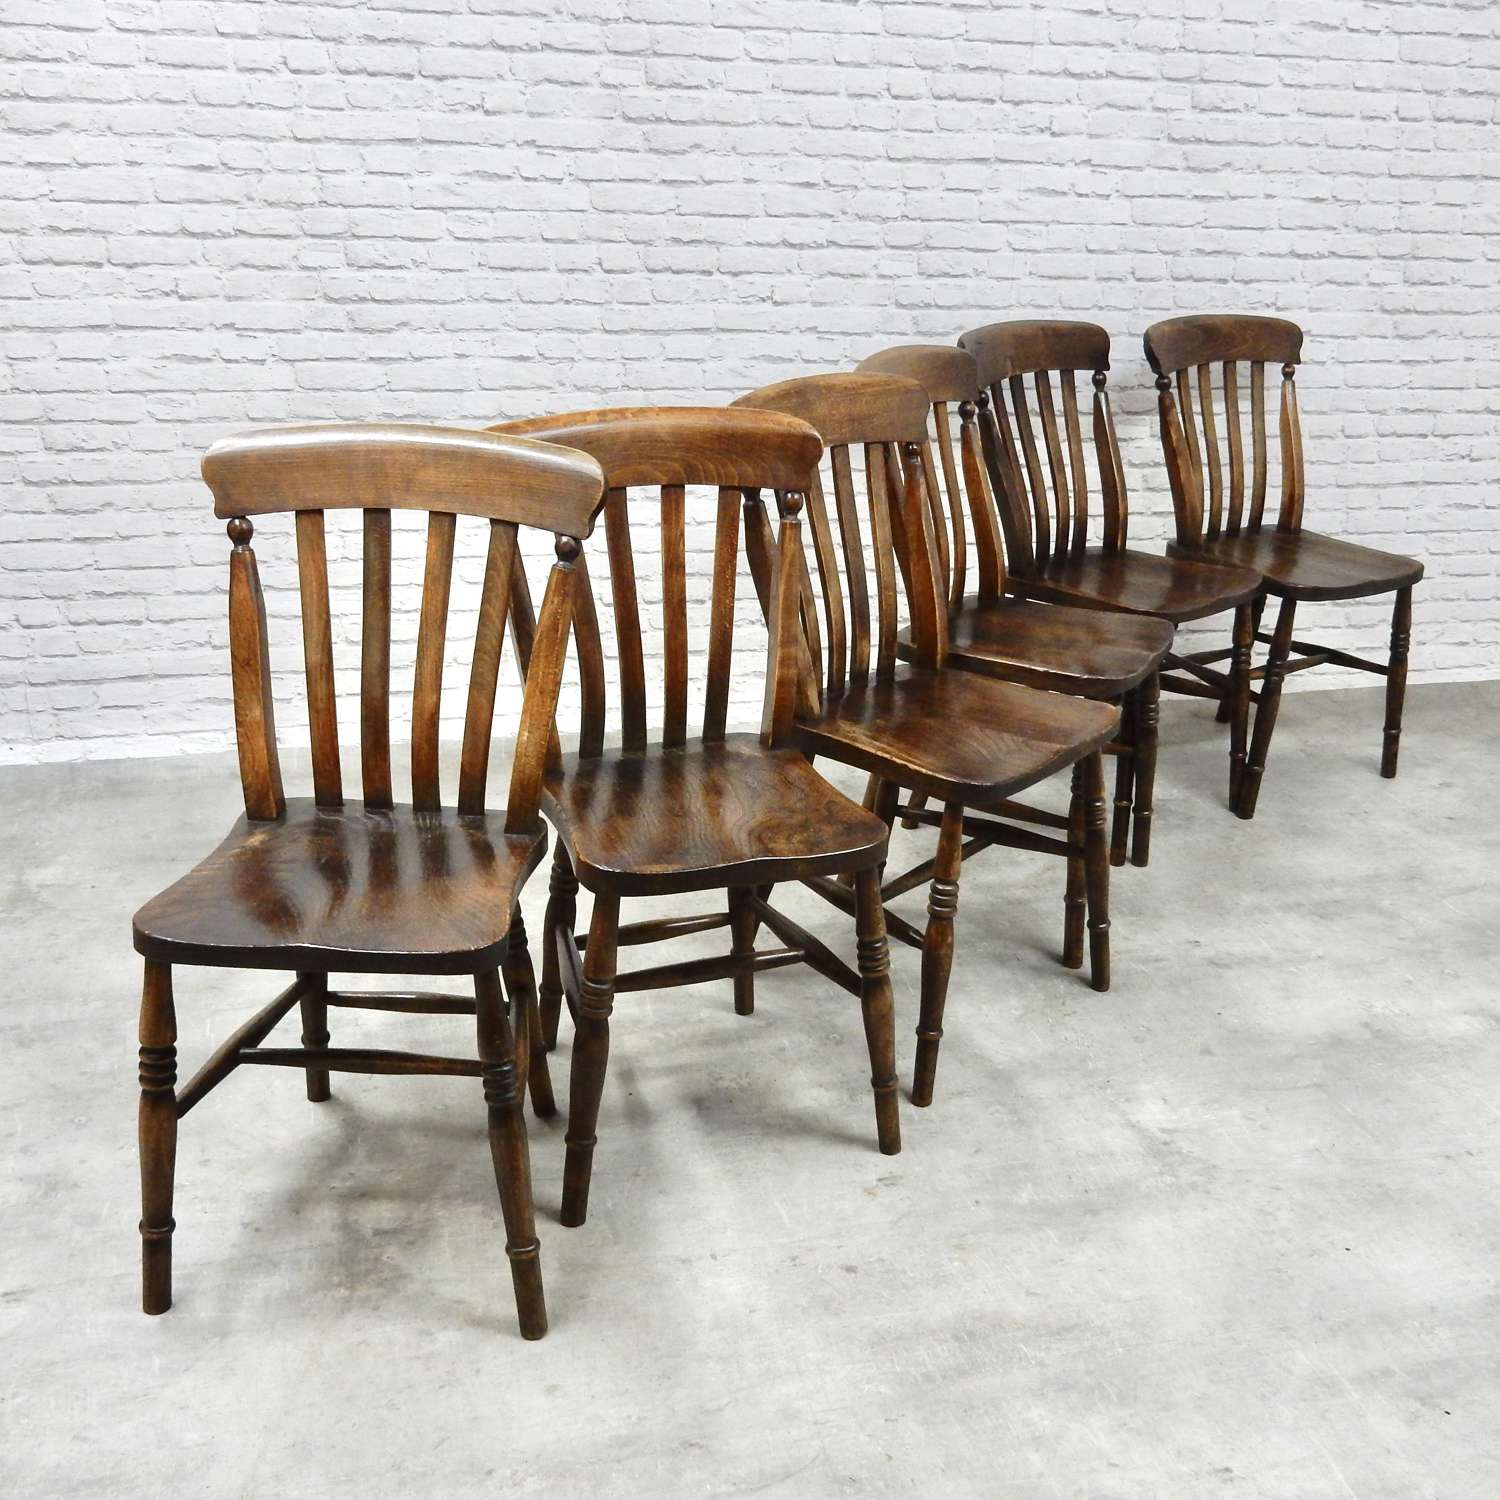 Vintage Windsor Kitchen Chairs